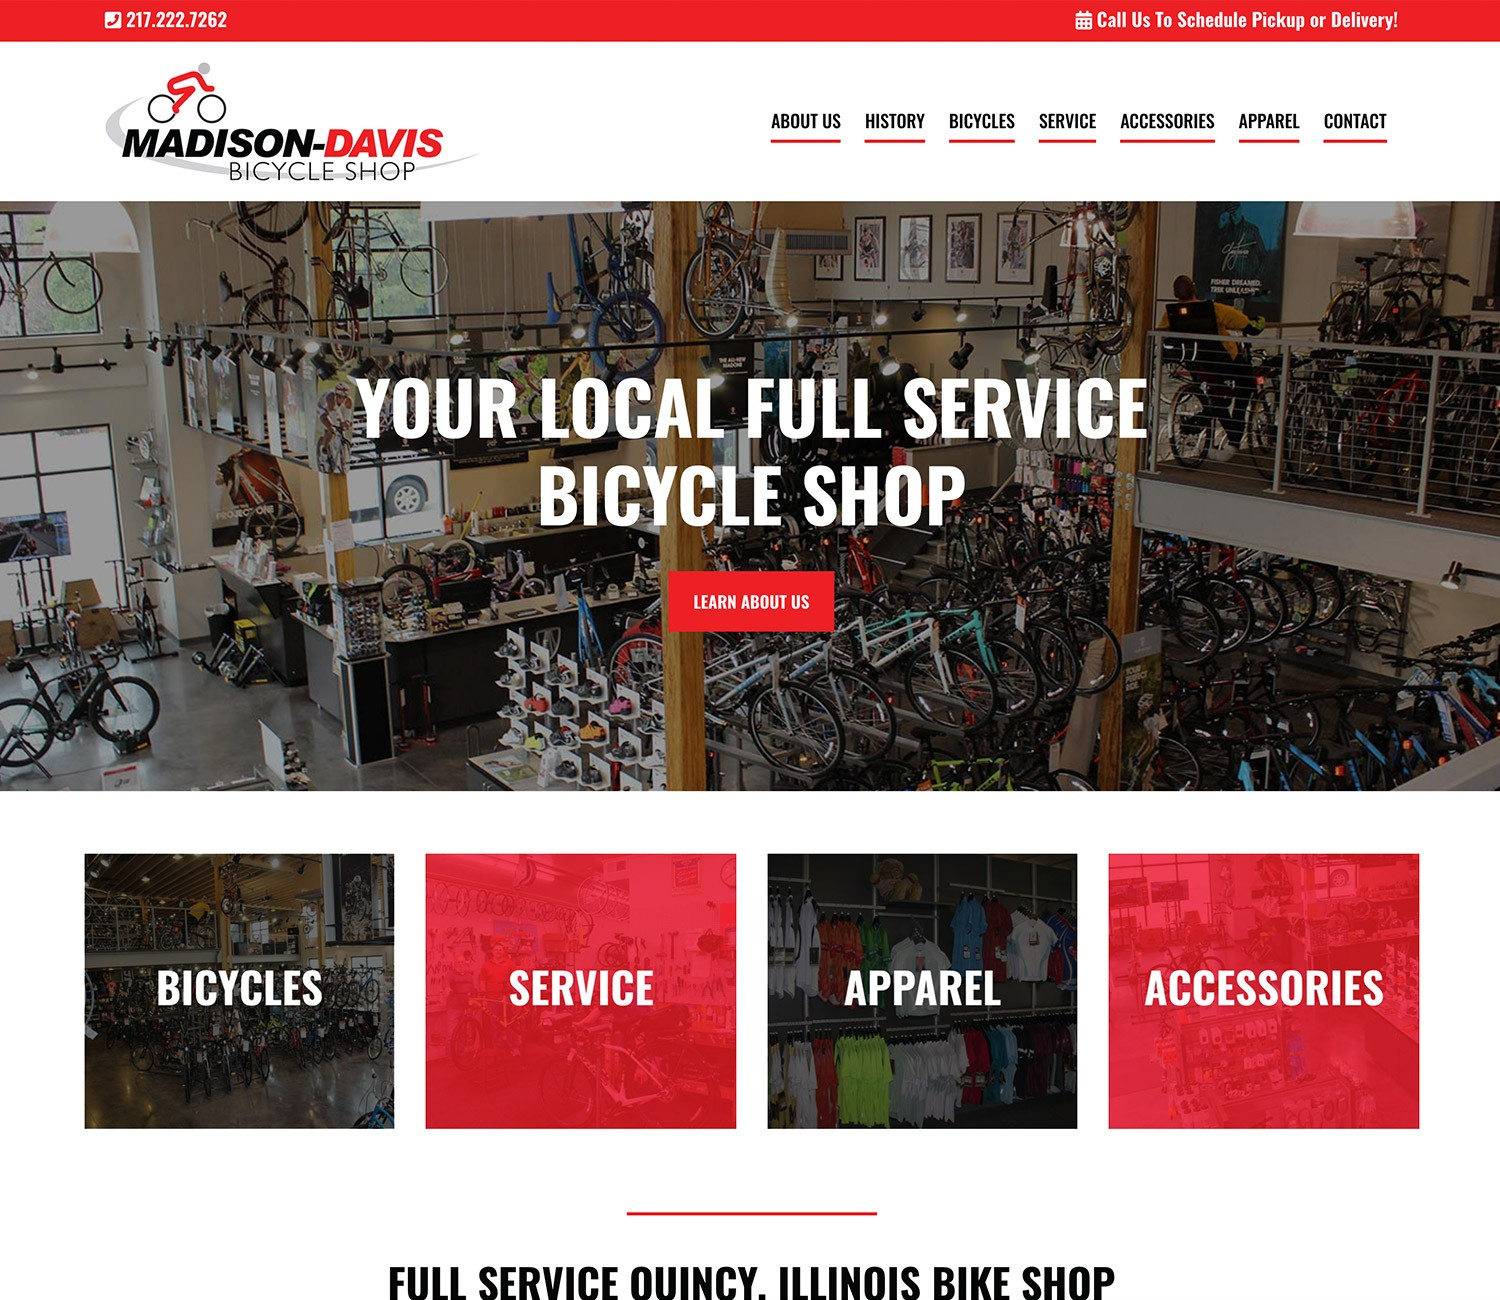 Madison Davis Bike Shop Website